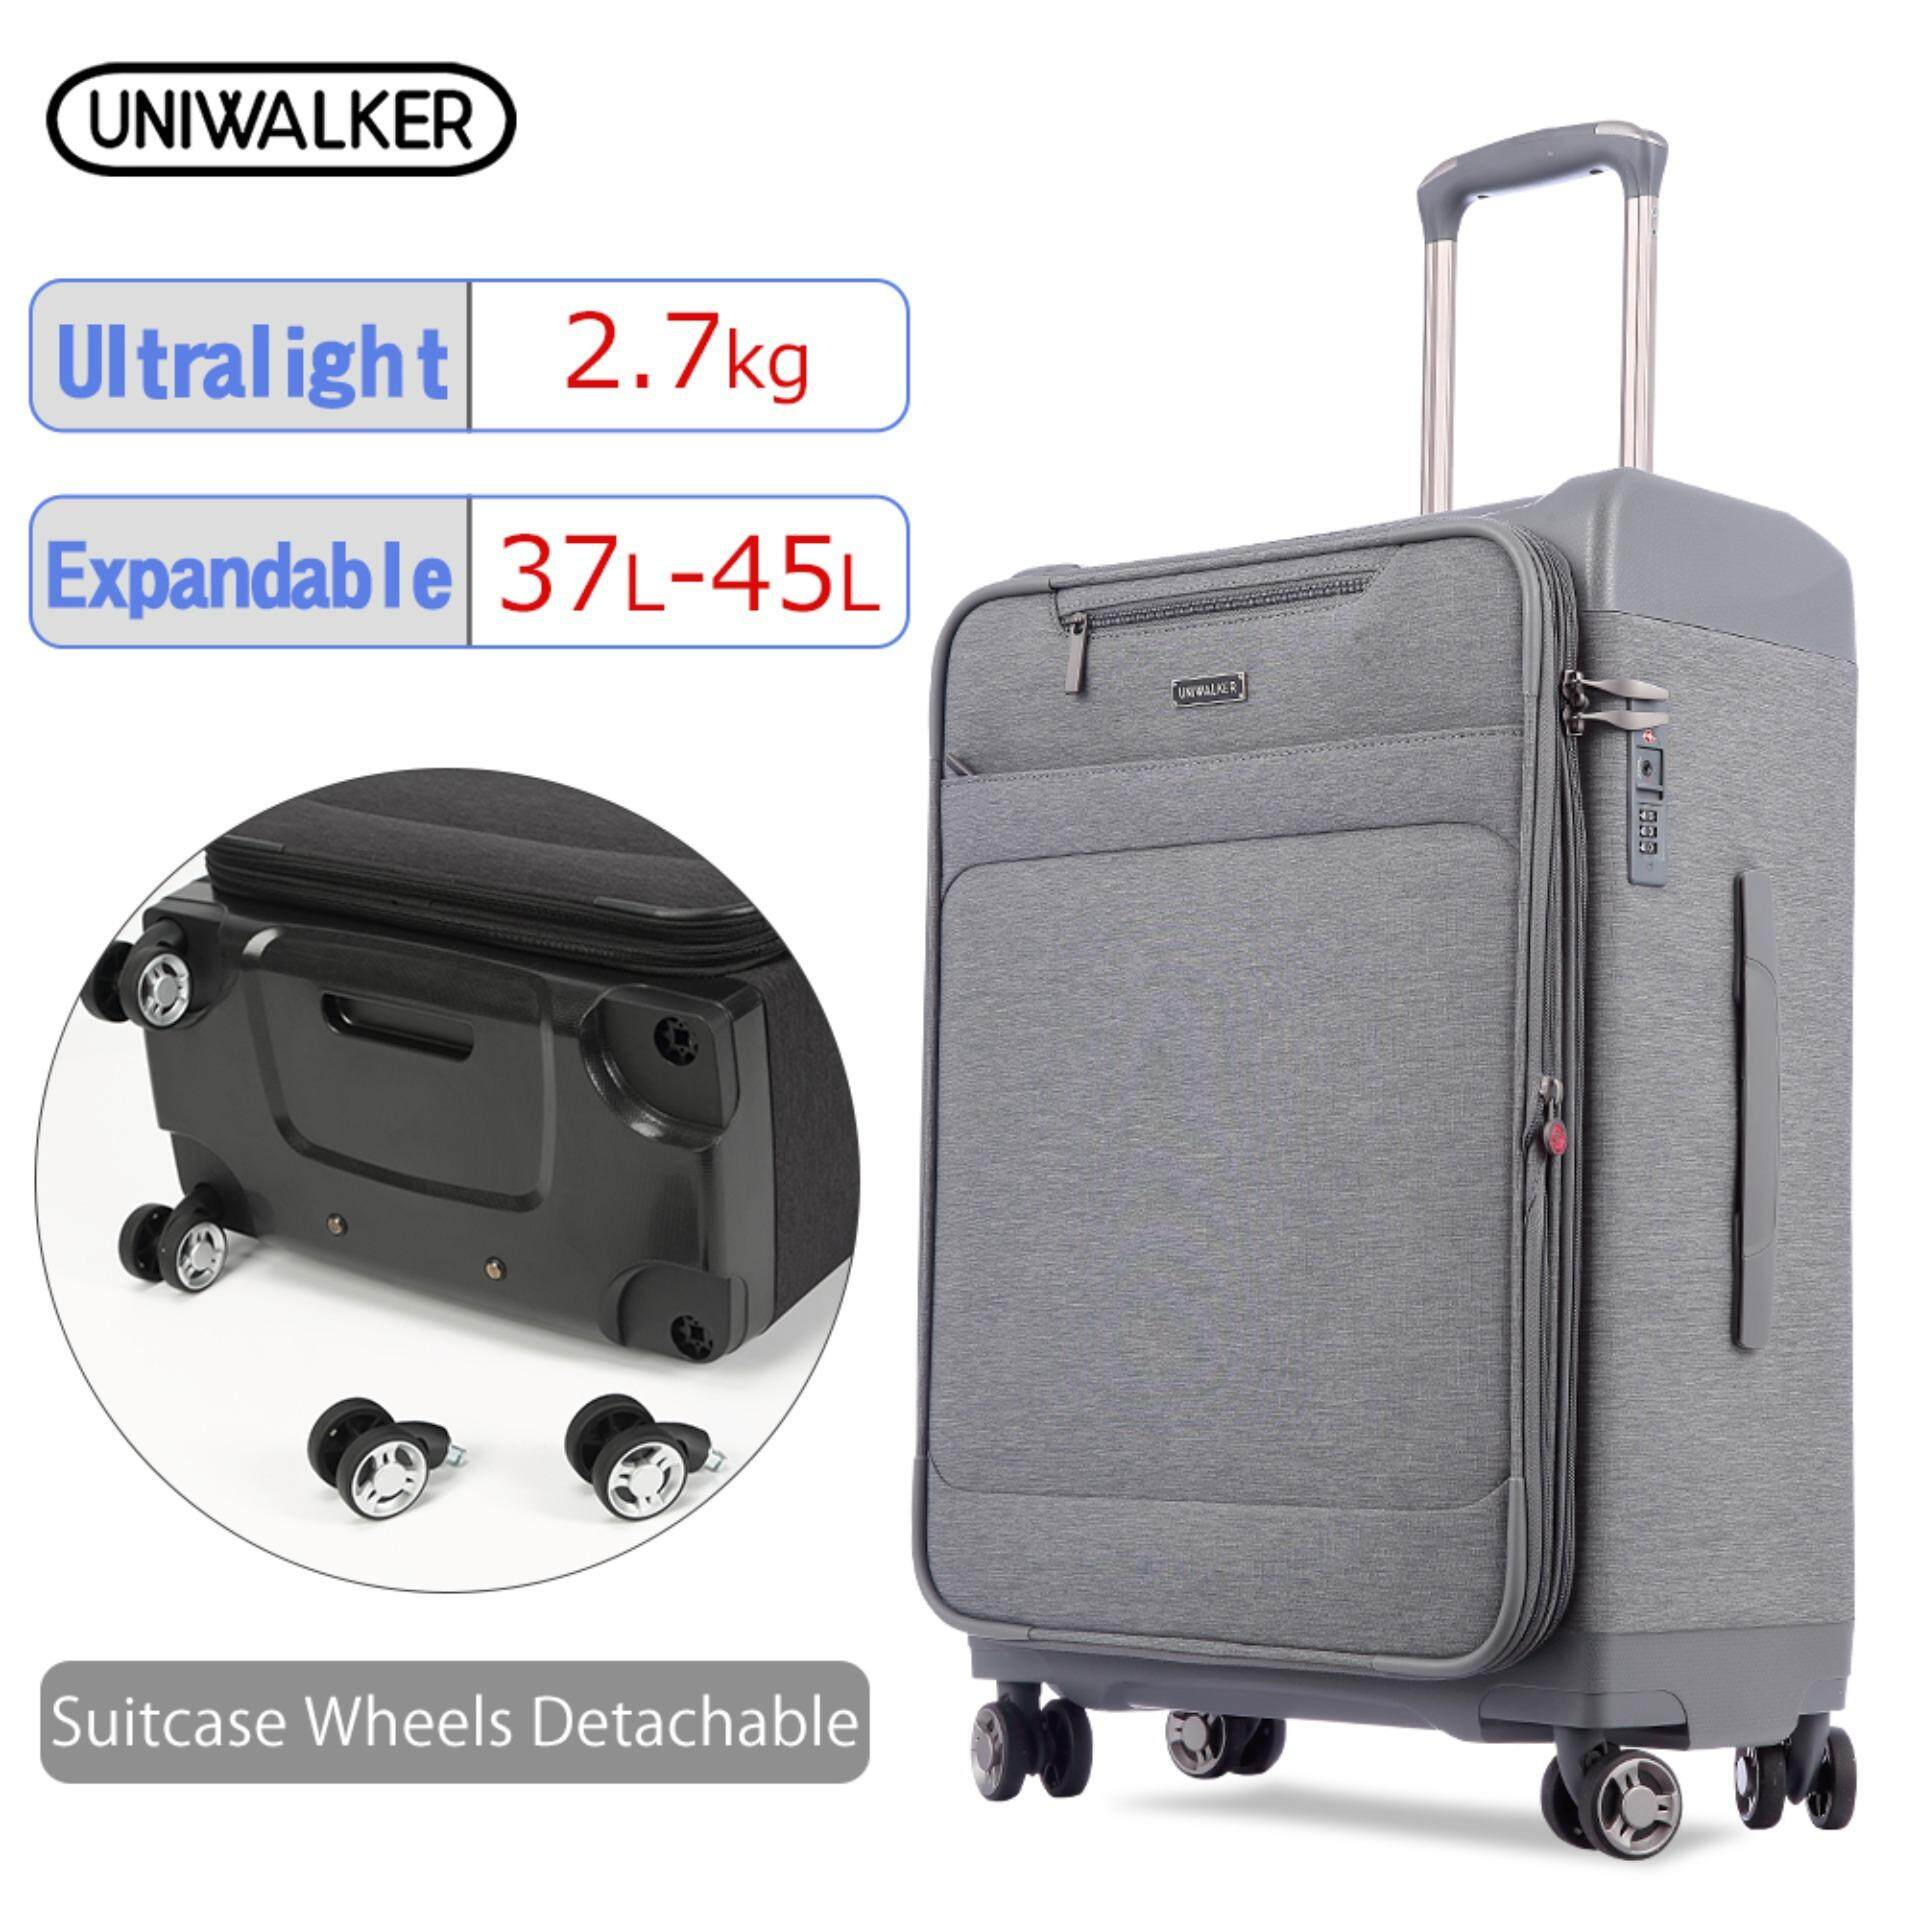 Uniwalker Travel Trolley Luggage Expandable Oxford Suit Case Ultralight Flight Bag Waterproof Case Luggage Universal Wheel Bussiness Suitcase